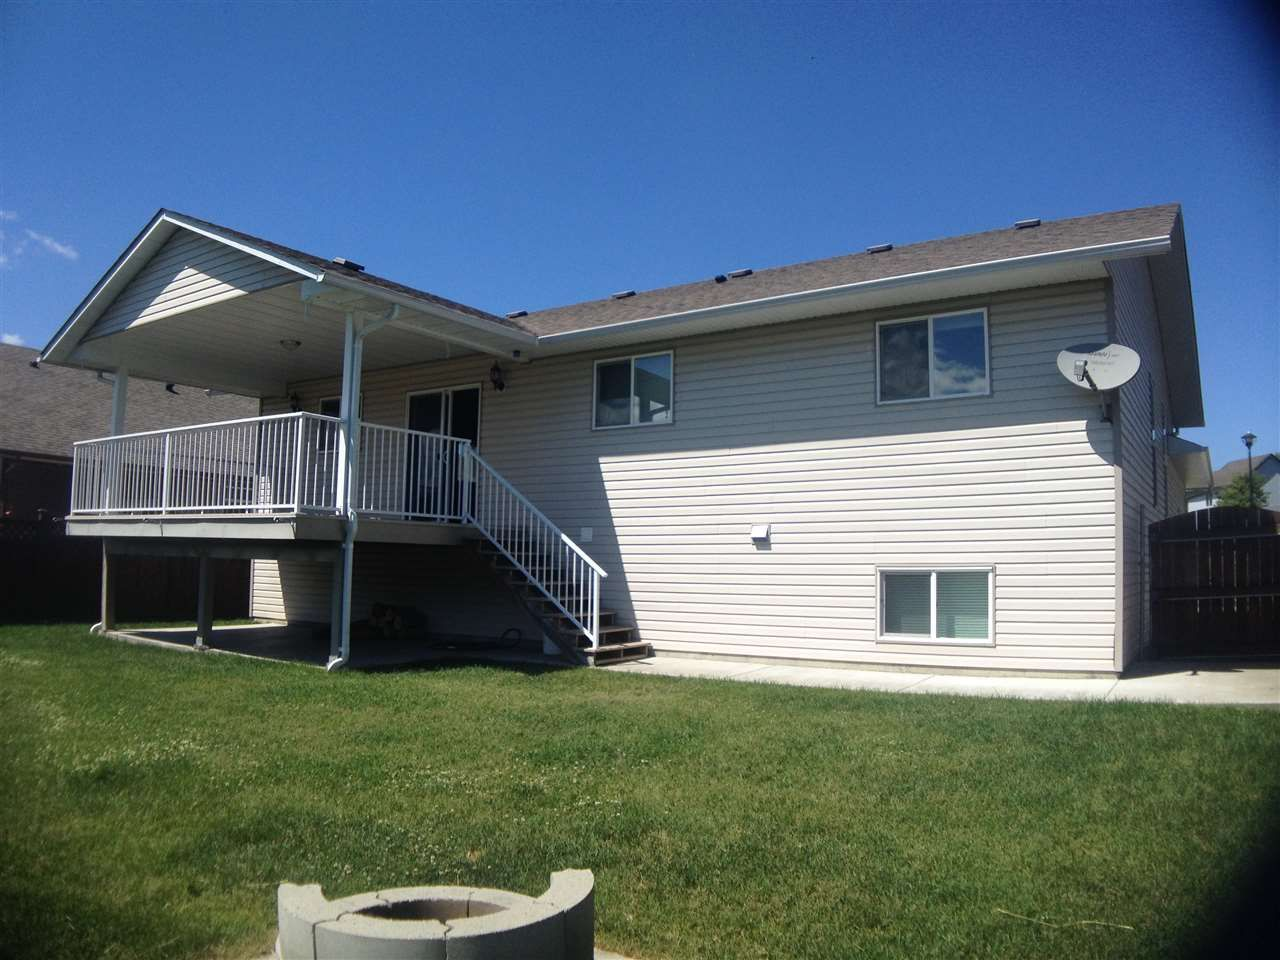 Photo 2: Photos: 183 NICKEL RIDGE Avenue in Quesnel: Quesnel - Town House for sale (Quesnel (Zone 28))  : MLS®# R2443698